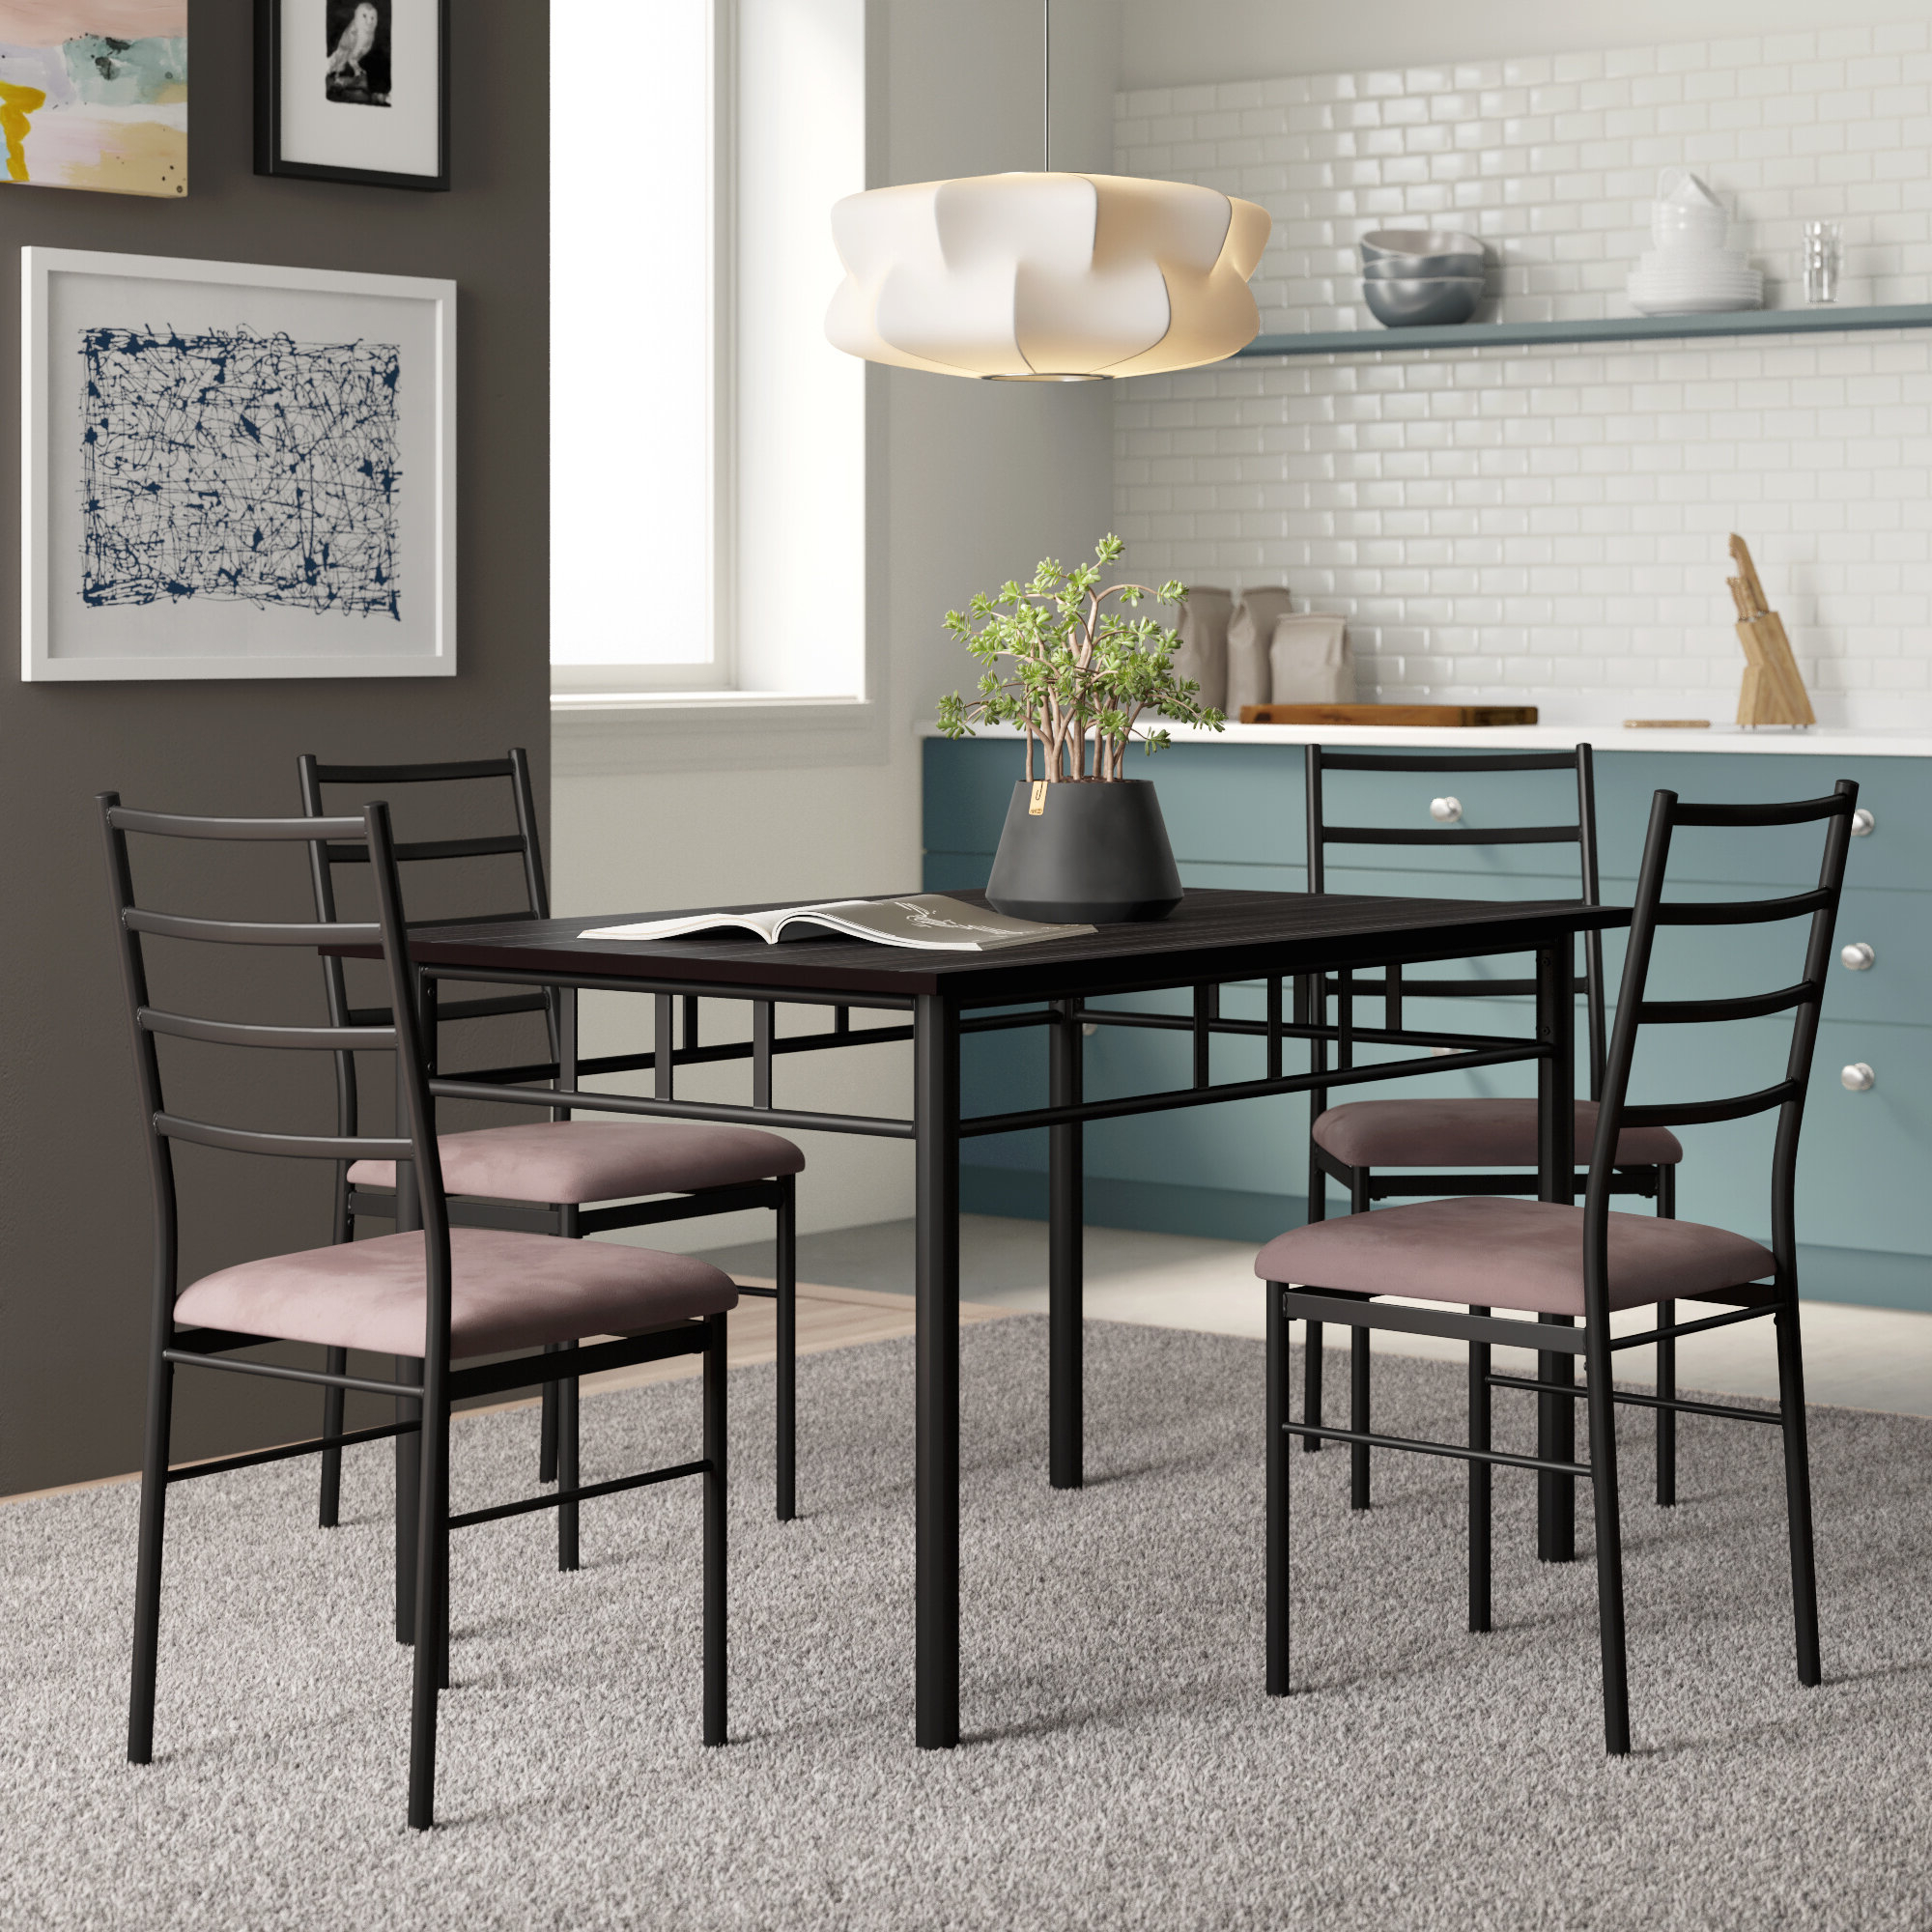 2018 Pattonsburg 5 Piece Dining Sets Throughout Jarrod 5 Piece Dining Set (Gallery 20 of 20)